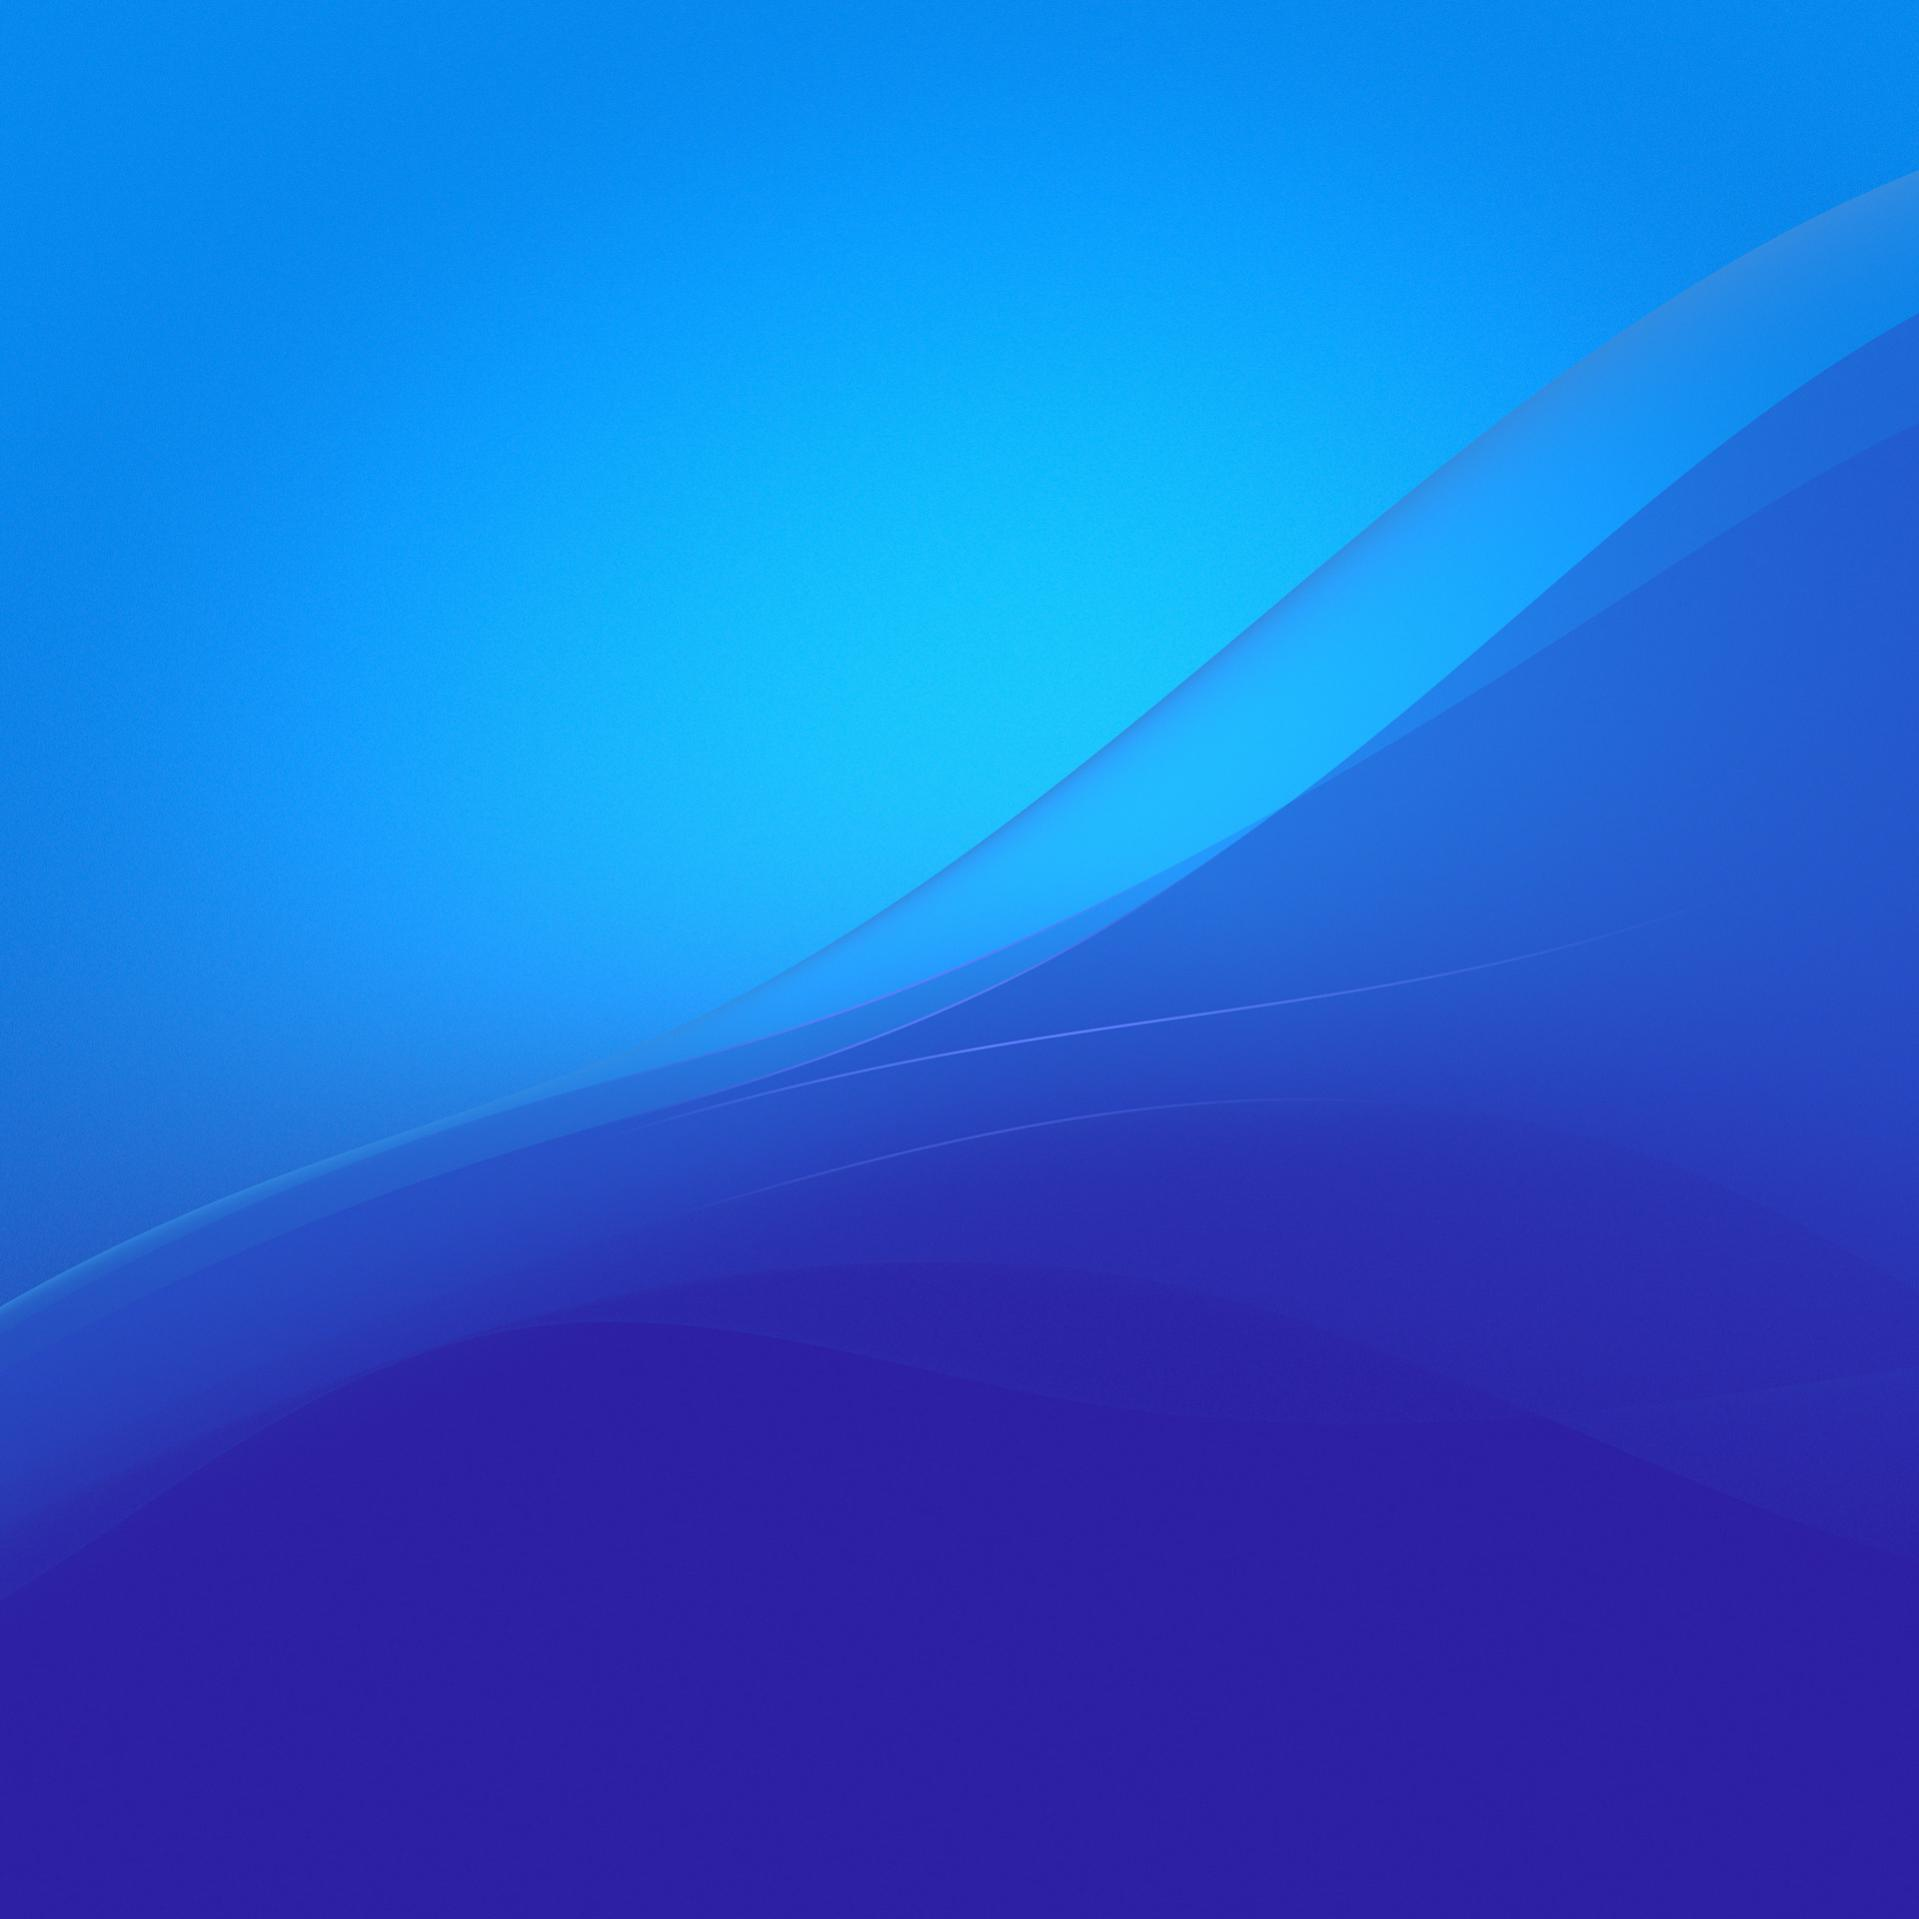 lollipop wallpapers xda